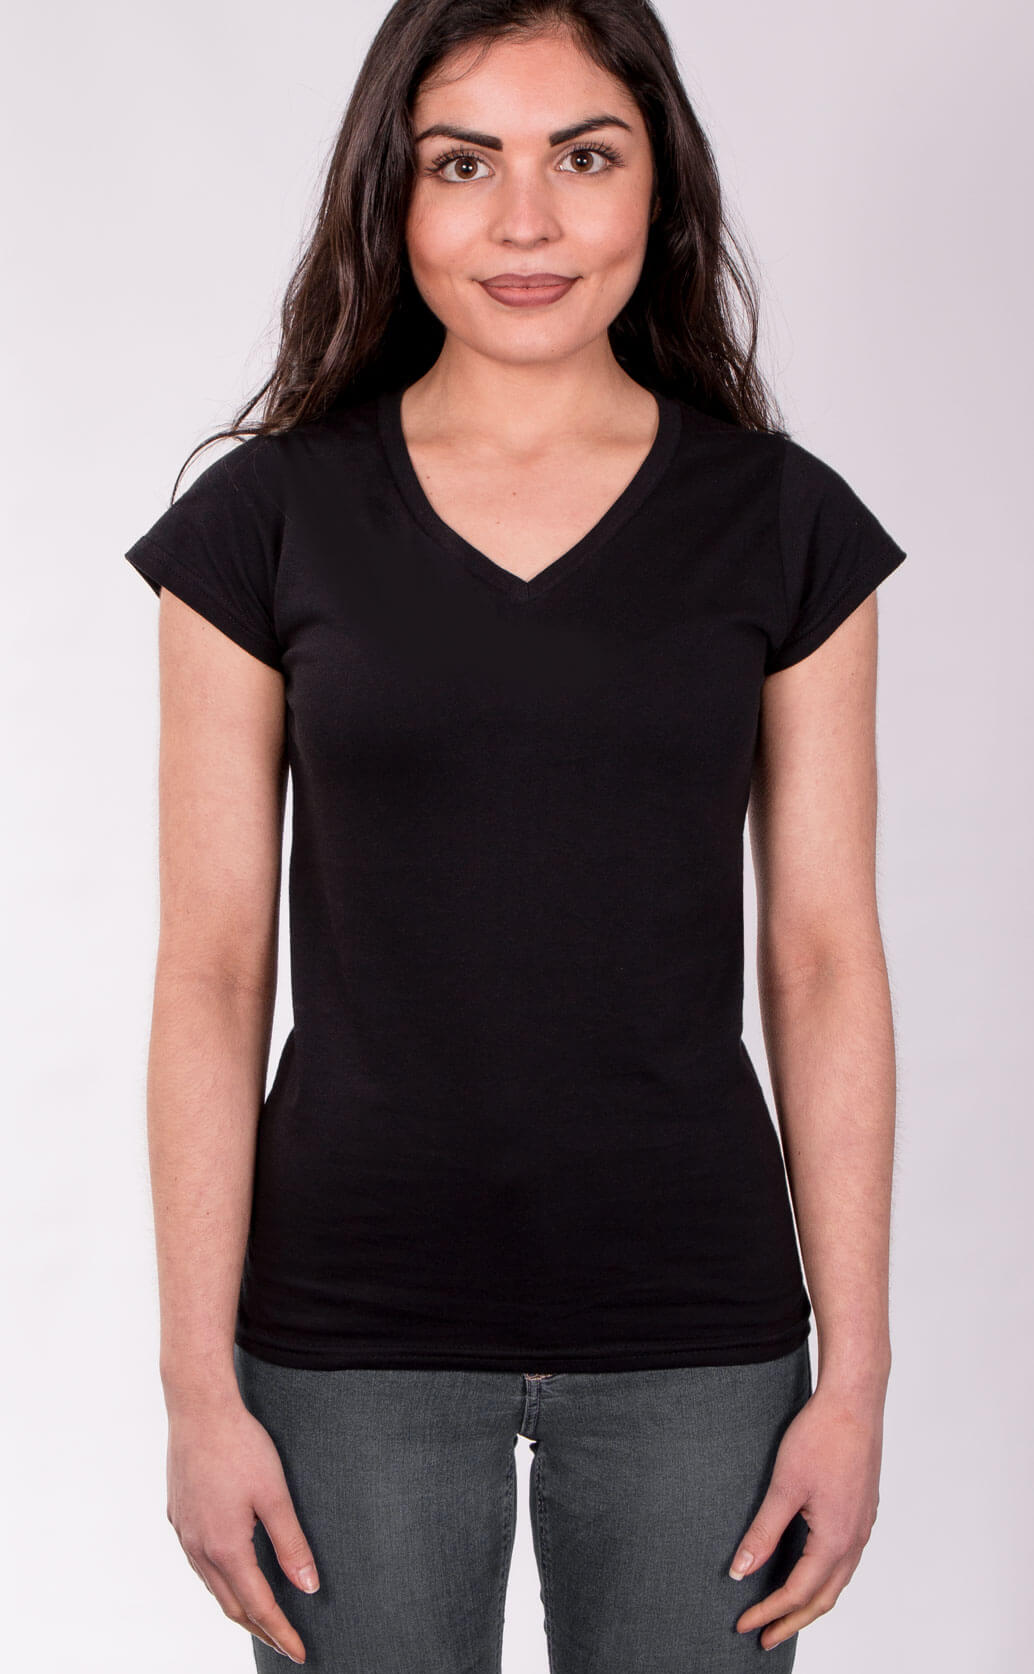 Size guide image for Lady V Neck shirt type. Model is dressed in black